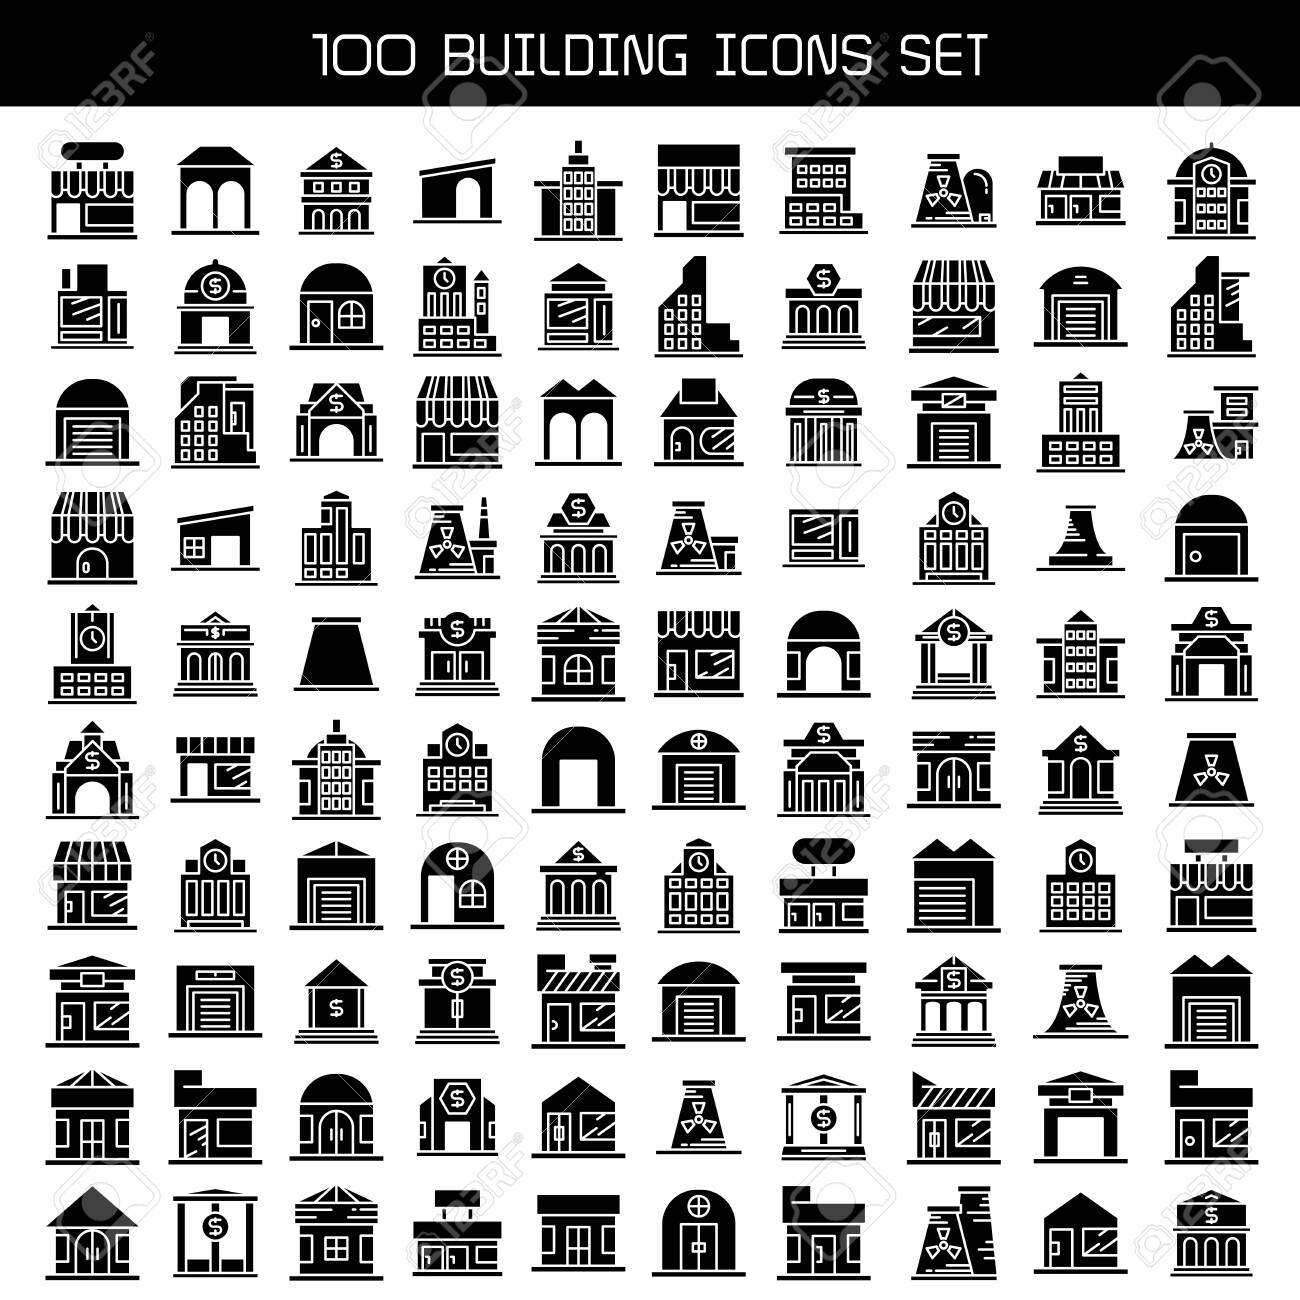 big set of building, tower city icons vector - 149627972